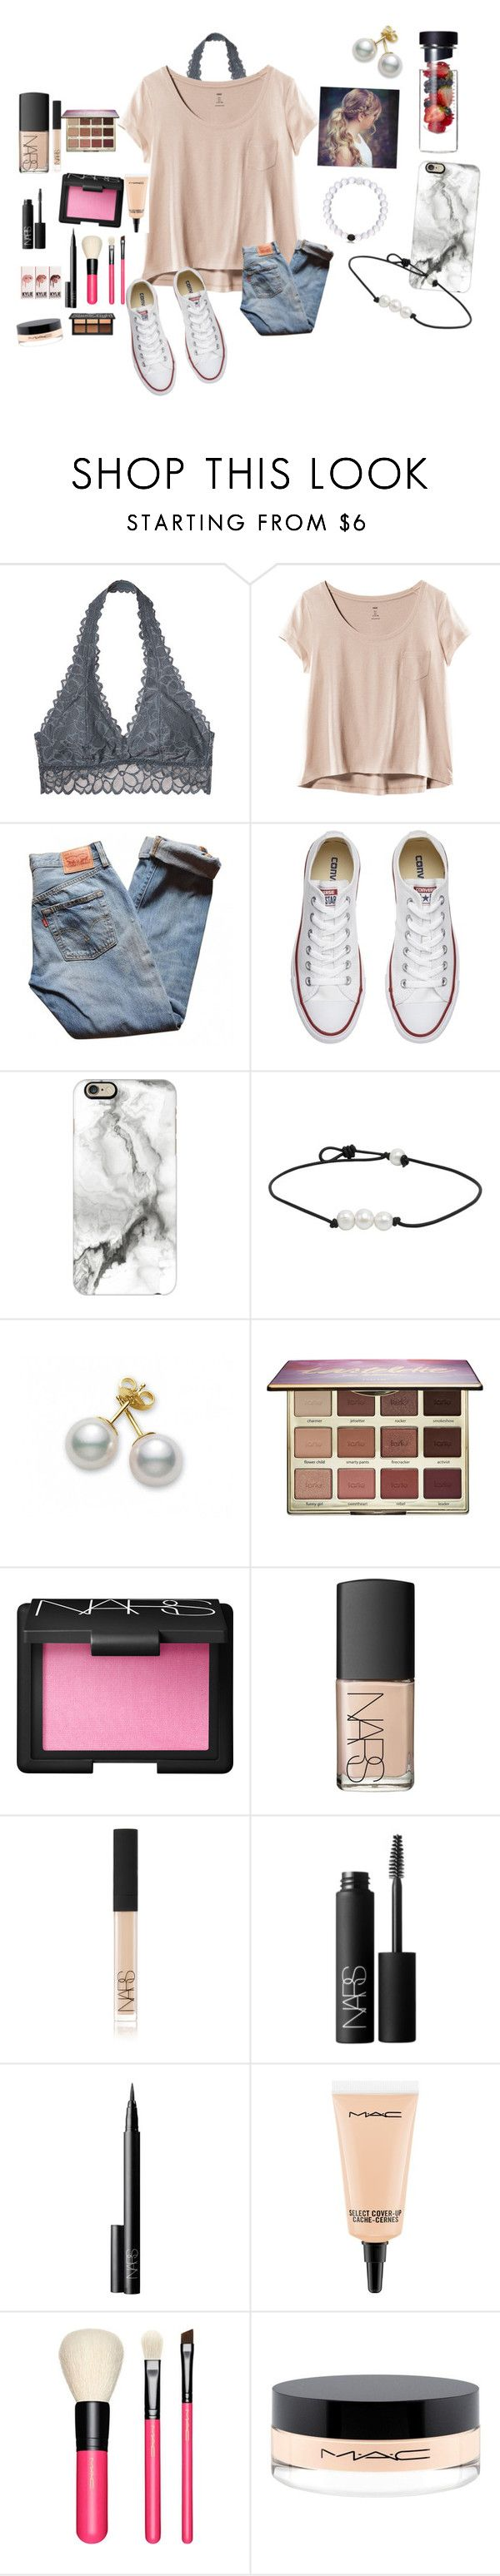 """""""Football game night """" by mckenna1 ❤ liked on Polyvore featuring Victoria's Secret, H&M, Levi's, Converse, Casetify, Mikimoto, tarte, NARS Cosmetics, MAC Cosmetics and Kat Von D"""